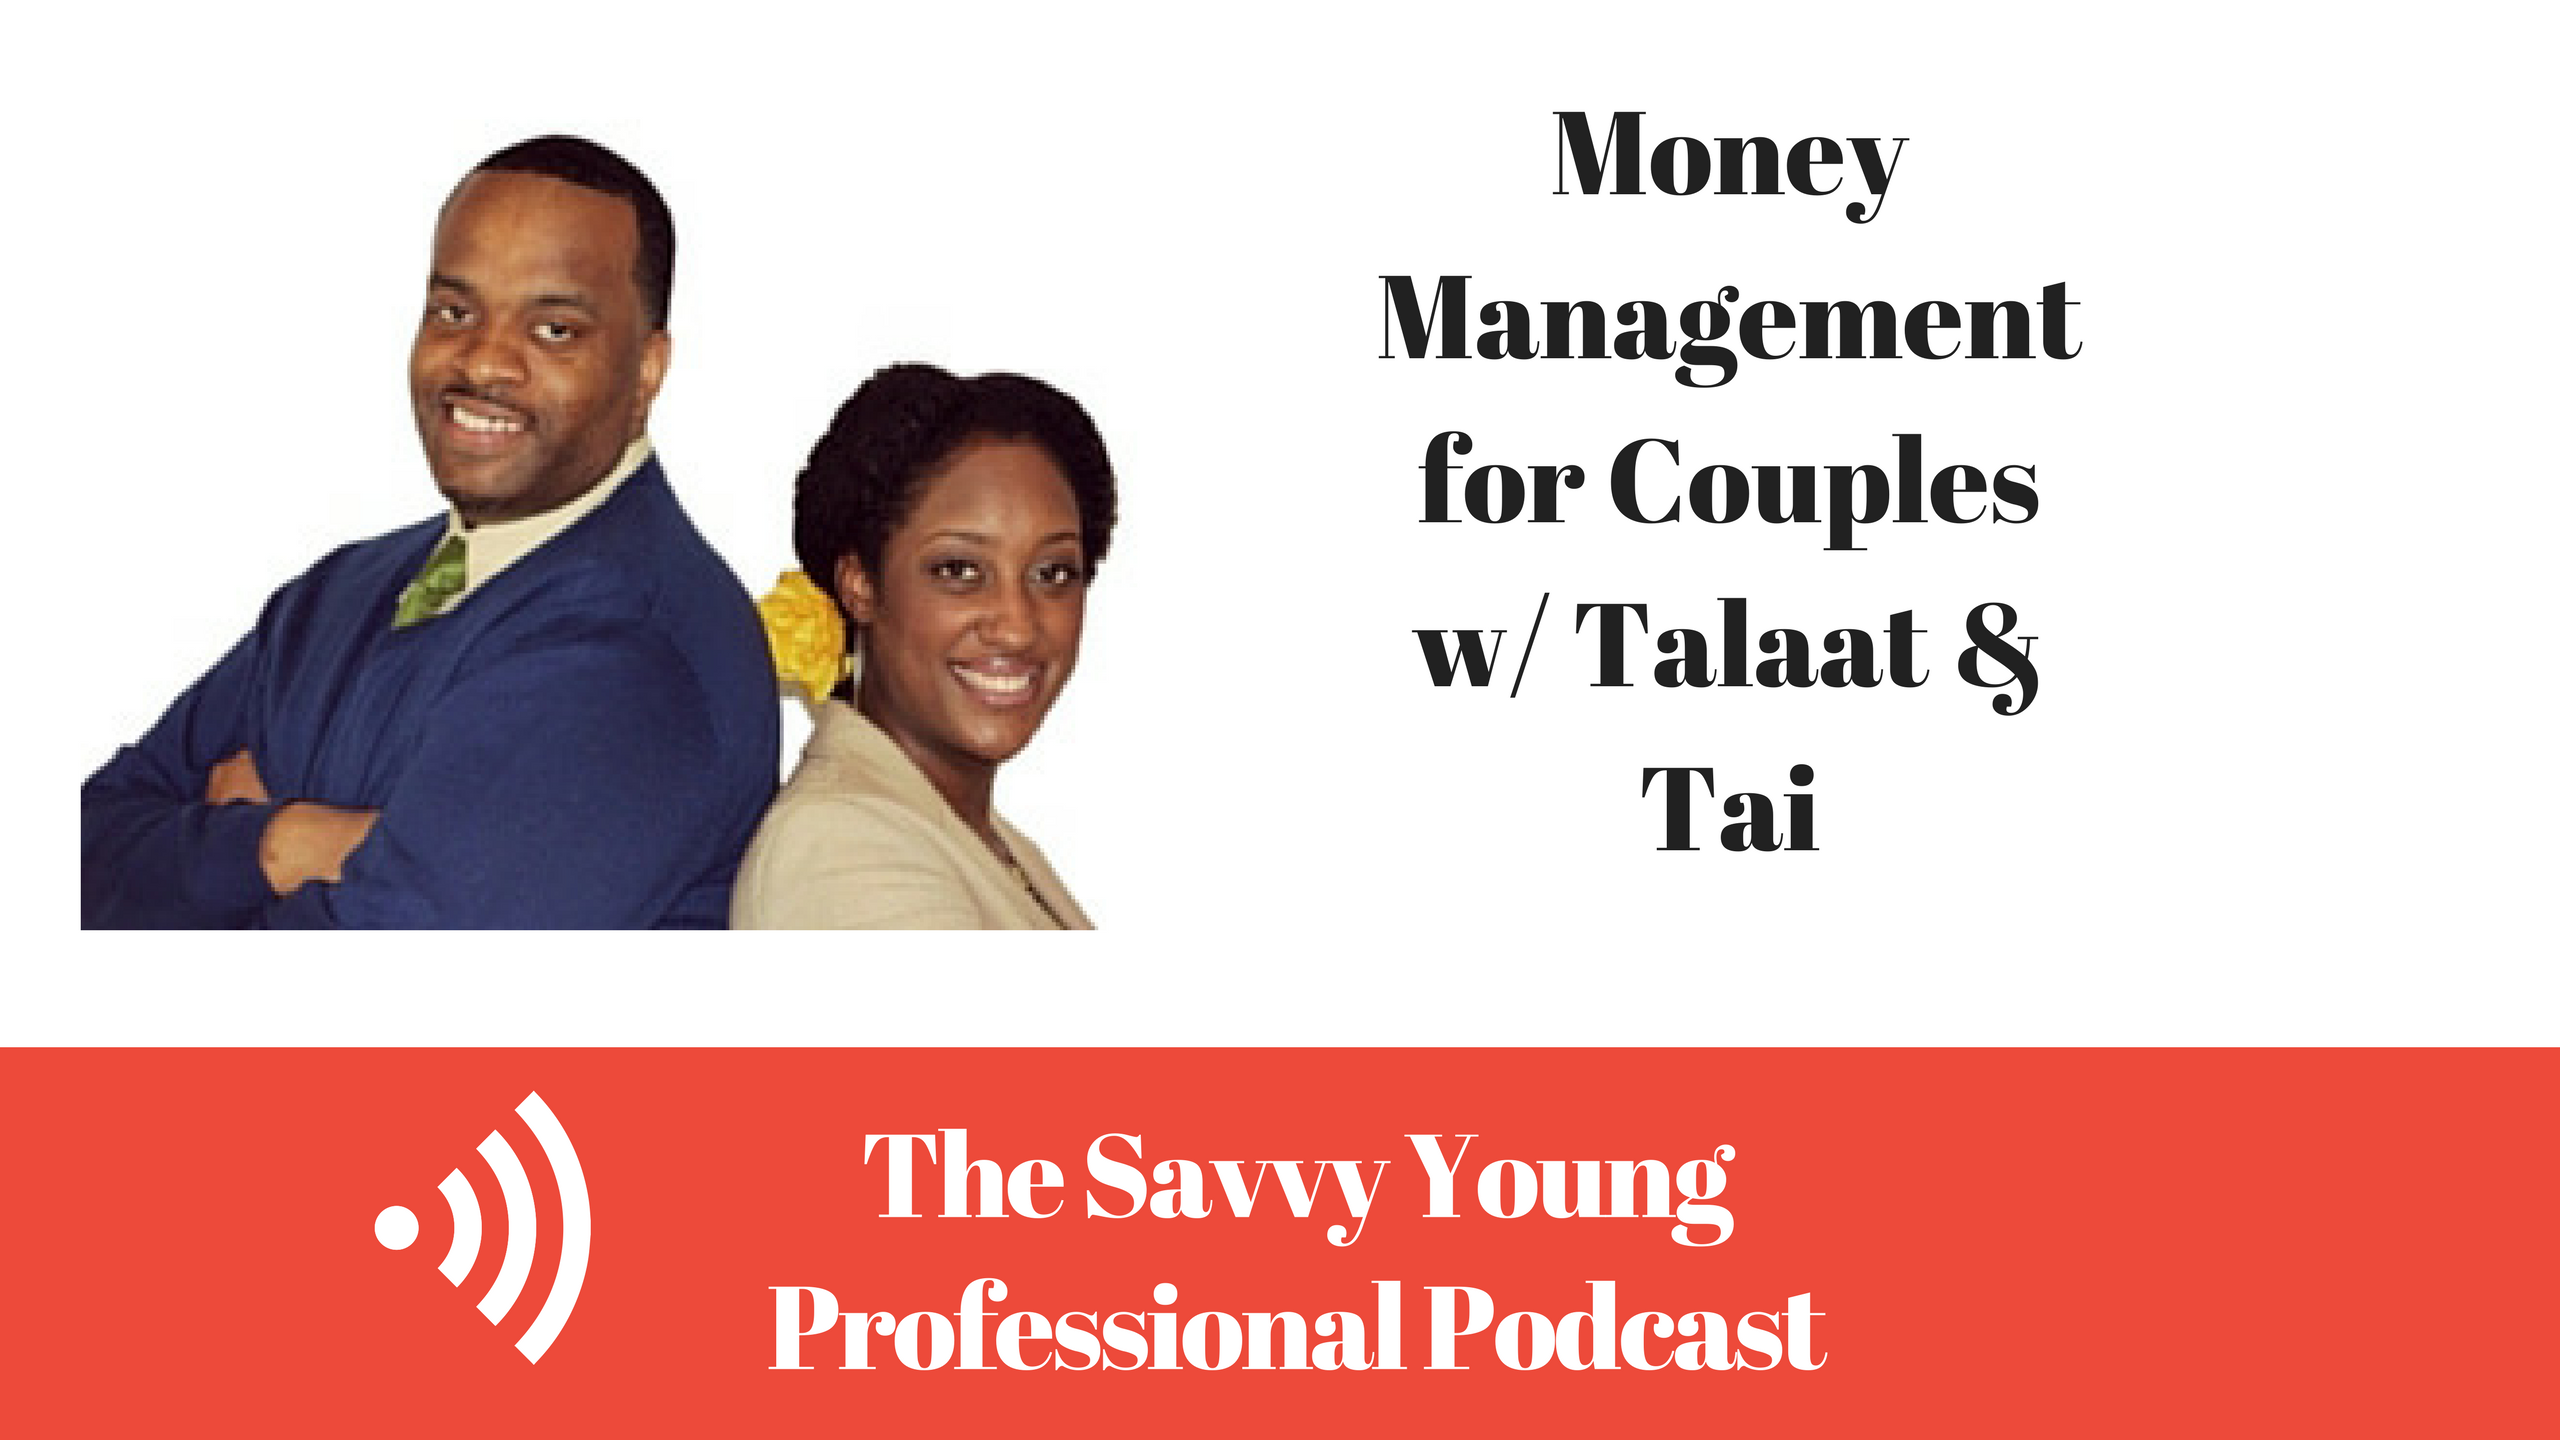 podcast-9-money-management-couples-w-talaat-tai